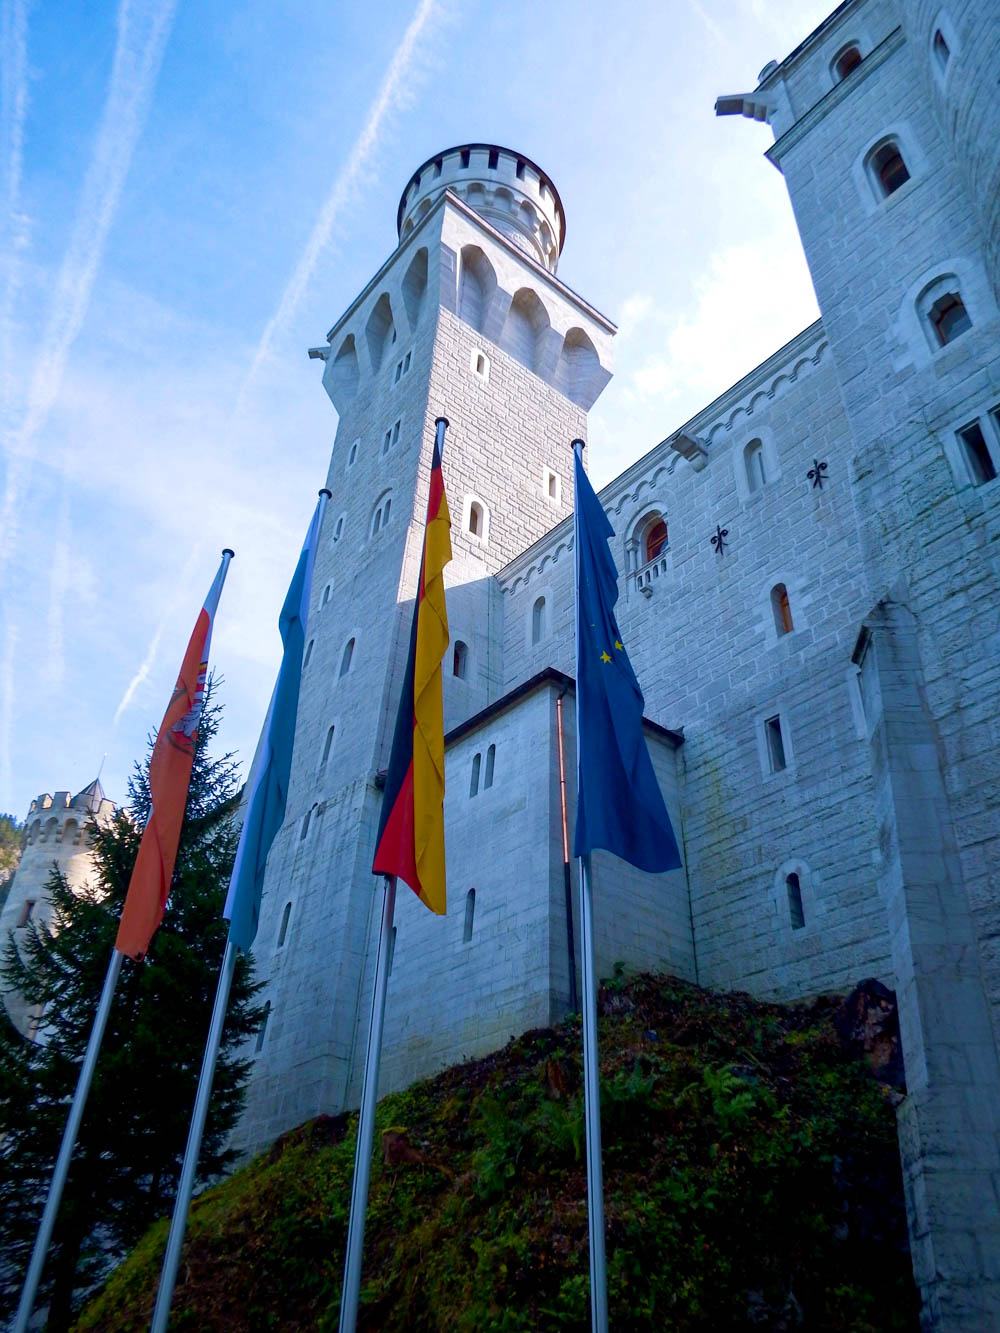 up close | 10 Crucial Tips to Visit Neuschwanstein Castle Skillfully and Worry-Free | Tips for visiting Neuschwanstein Castle in Bavaria, Germany | Neuschwanstein Castle tour tickets